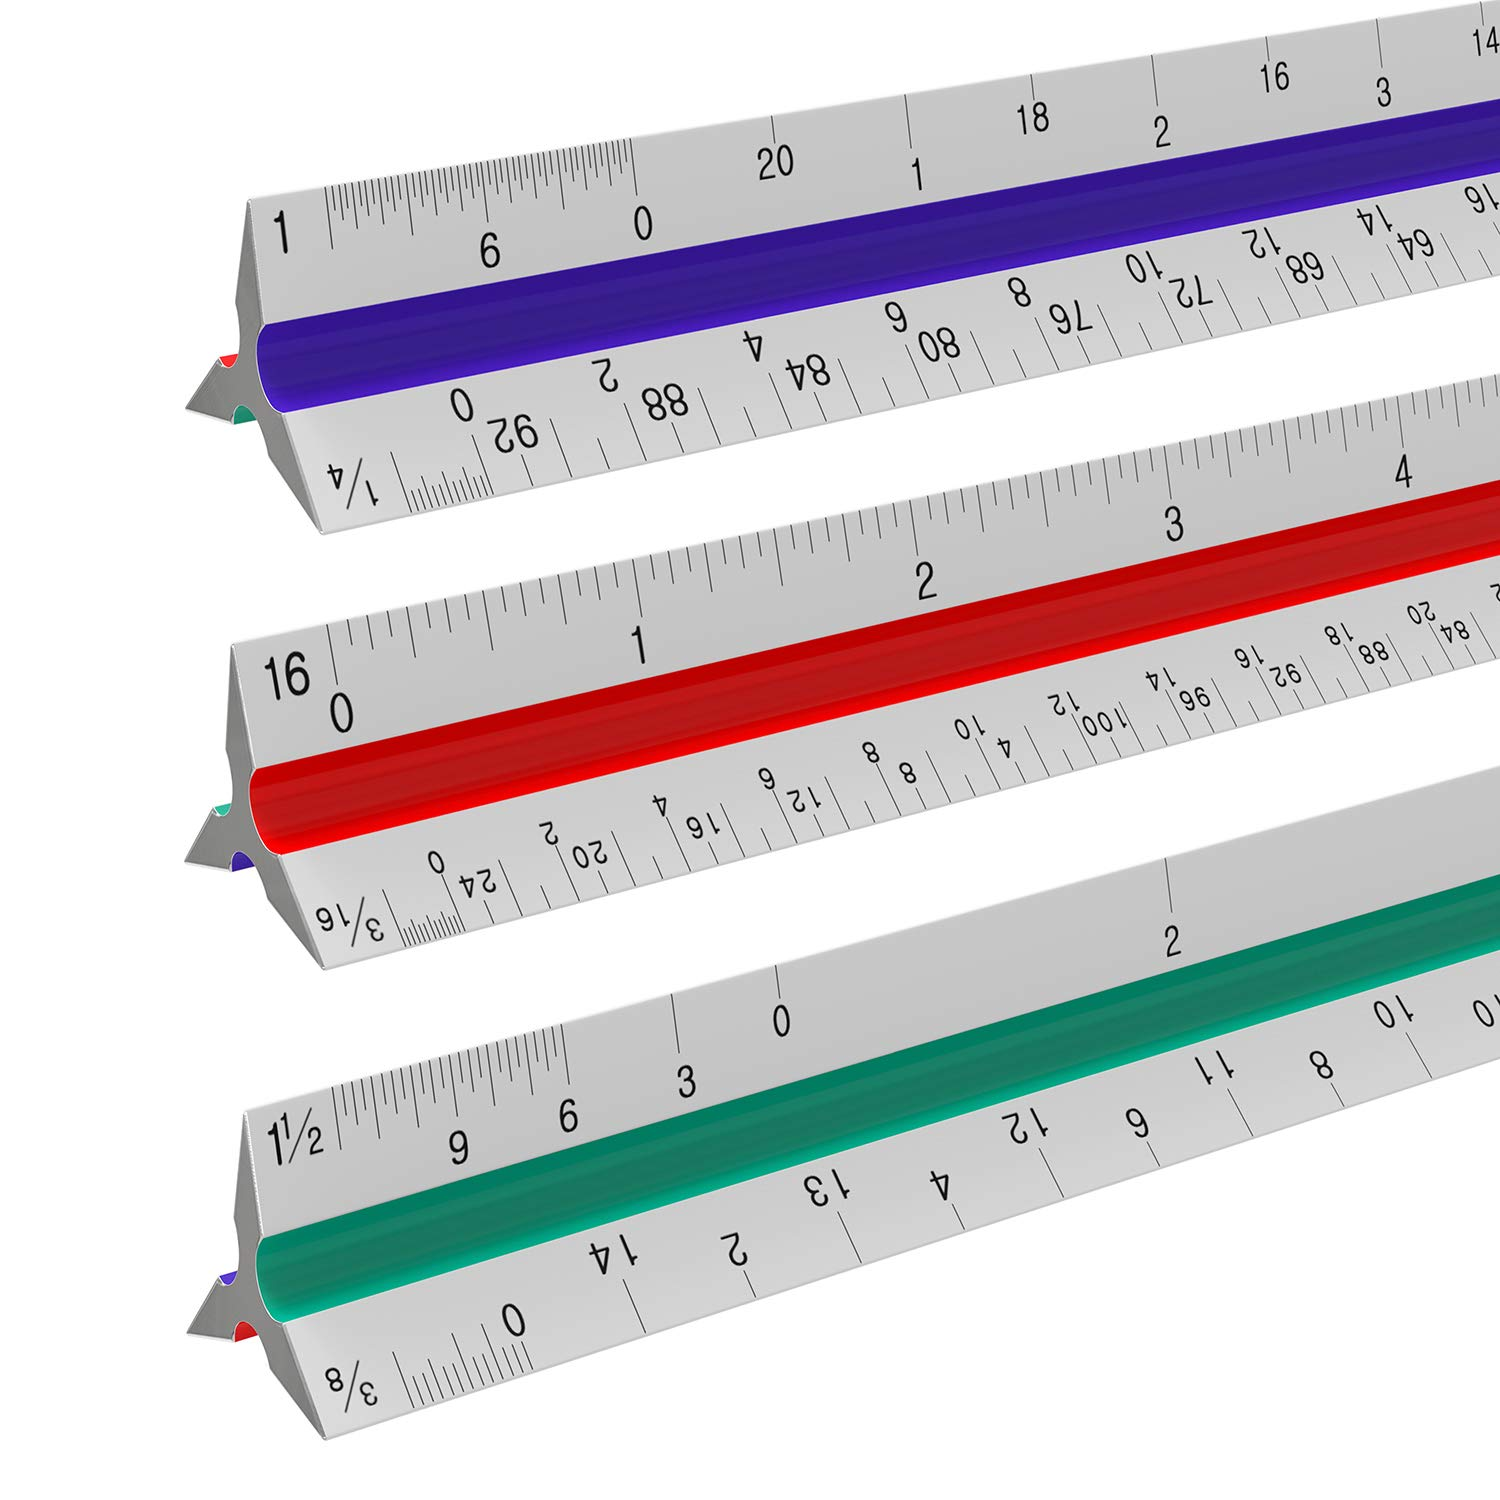 Architectural Scale Ruler - 12'' Aluminum Triangular Architect Scale Ruler for Engineering Scale, Drafting Ruler, Metal Scale Ruler, Blueprint - with Imperial Measurements by Leyaron (Image #1)